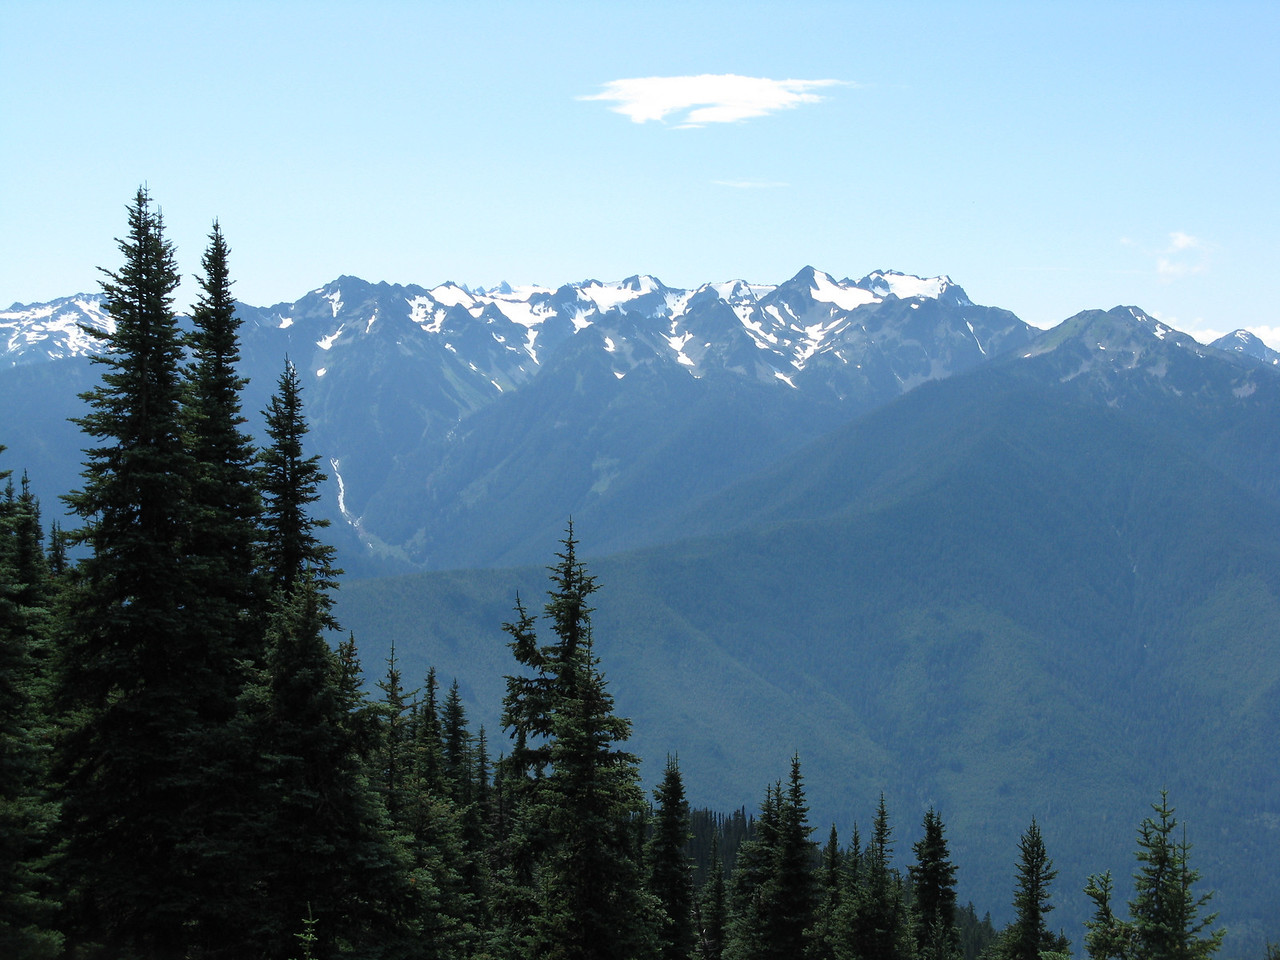 Looking south to the glaciers on the Olympic Mountains.